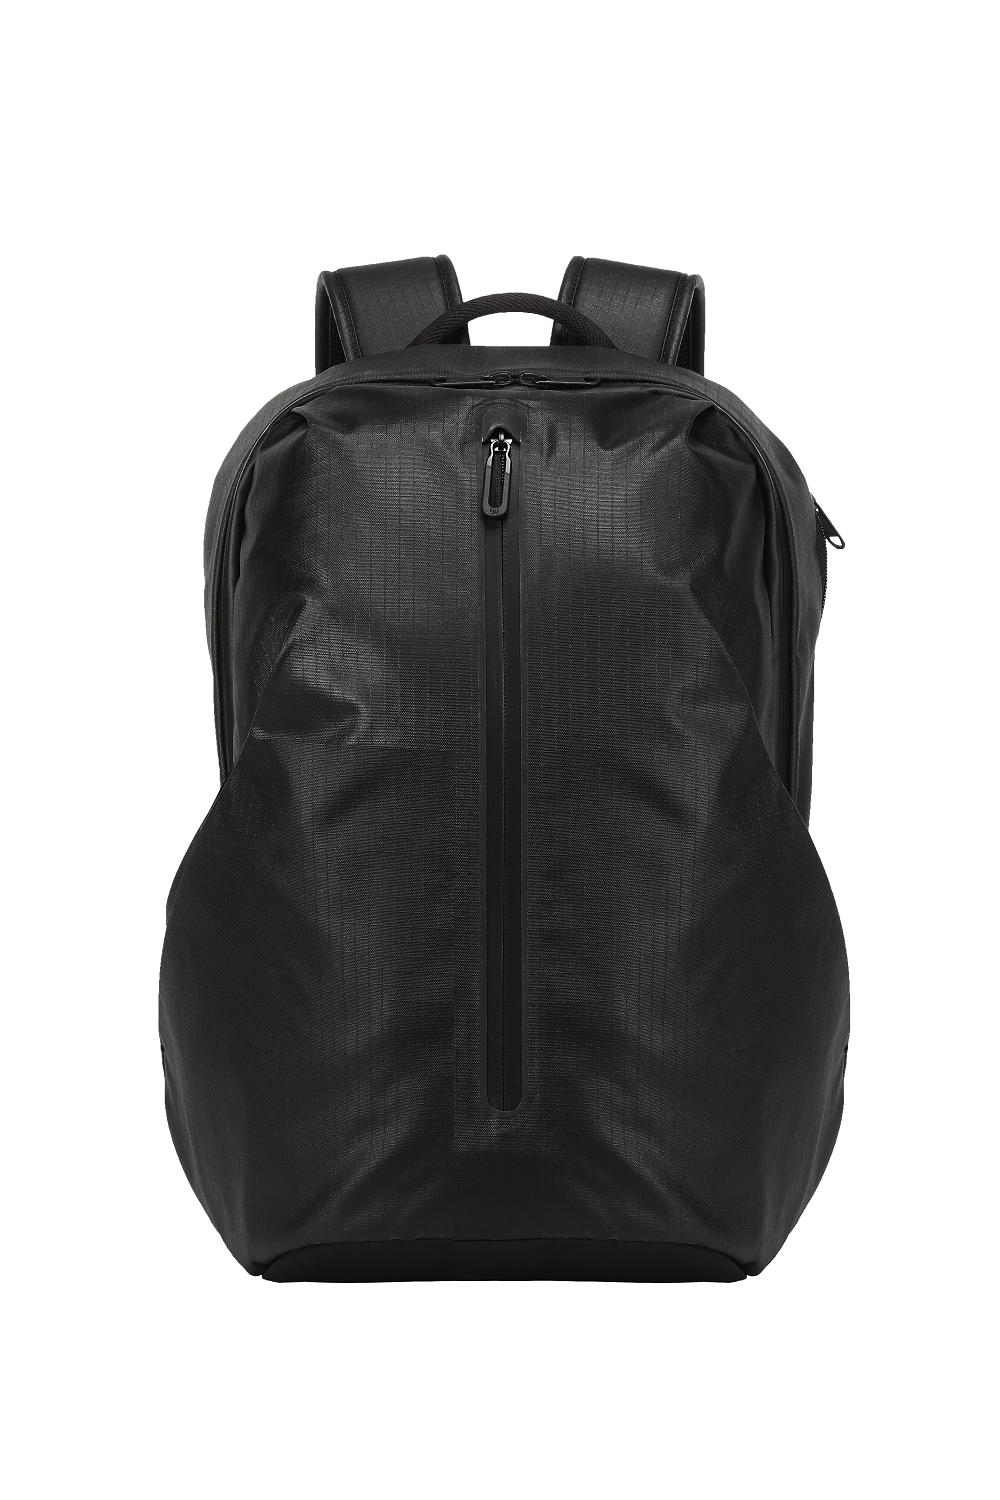 90Fun All Weather Functional Urban Backpack Black For Sale